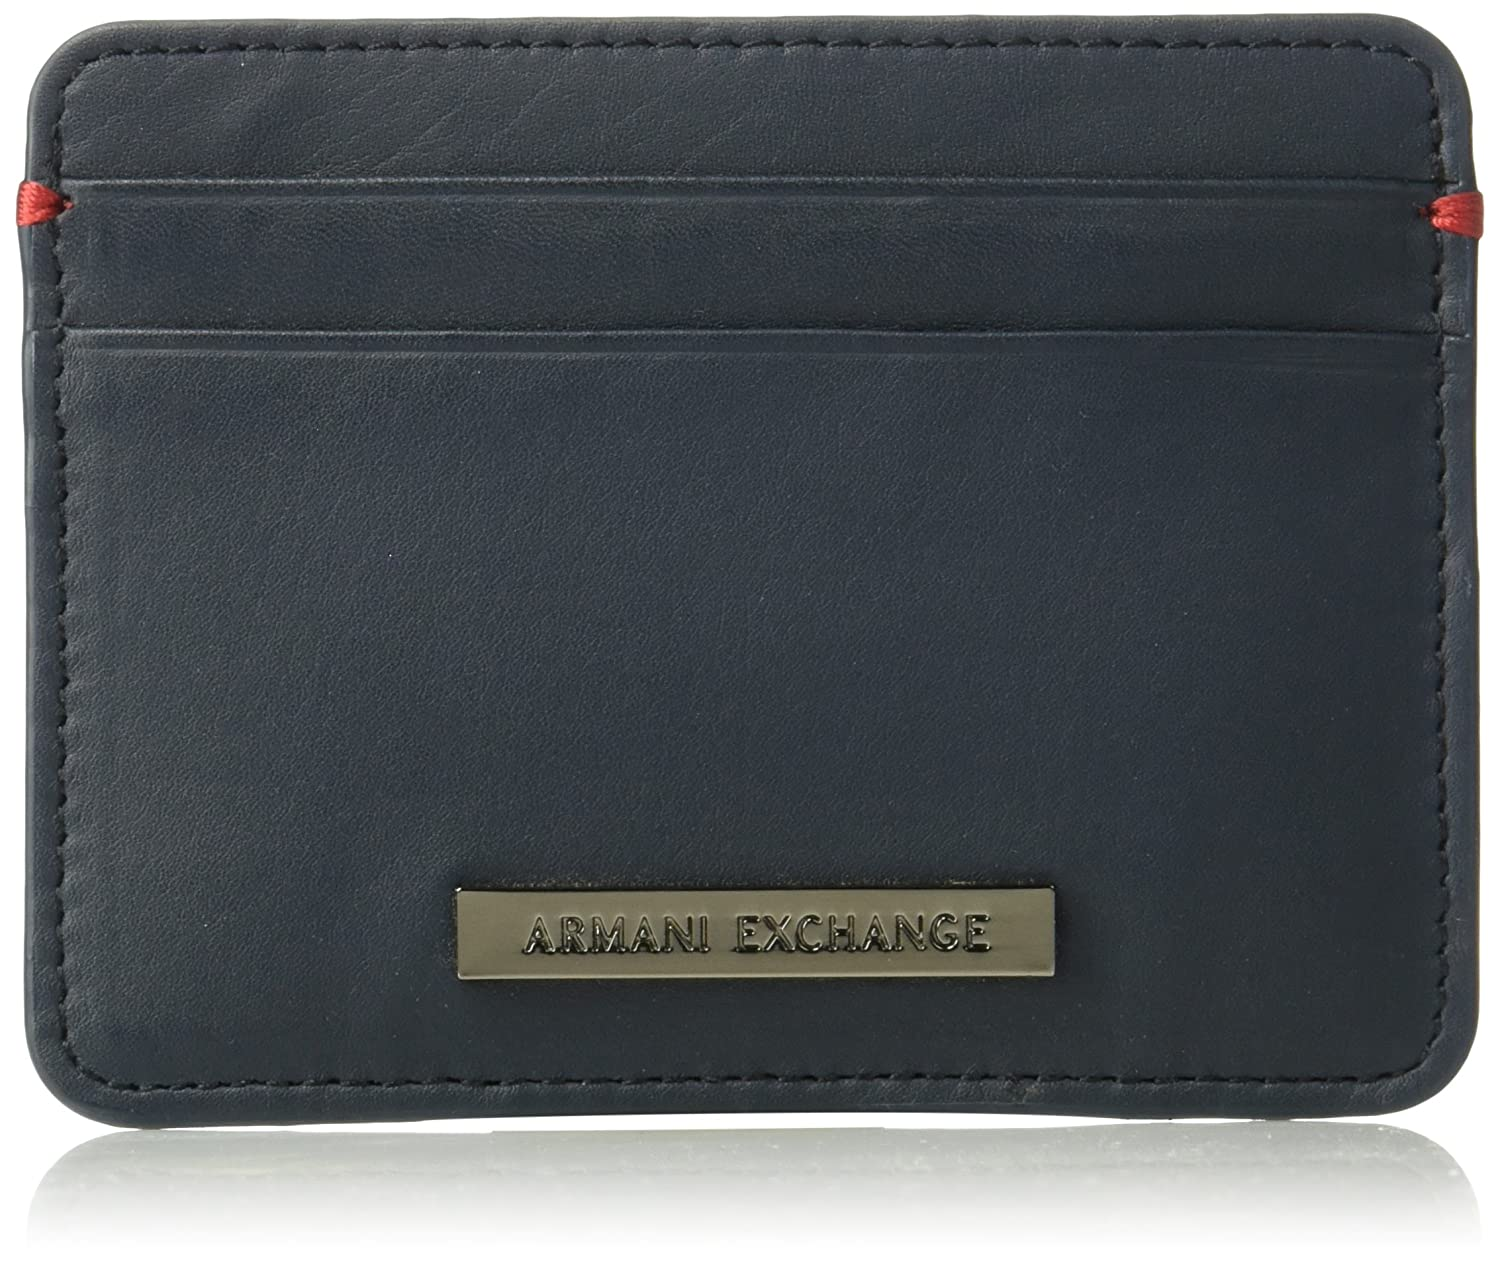 Armani Exchange Two Card Holder Accessory, Navy, One Size at Amazon ...